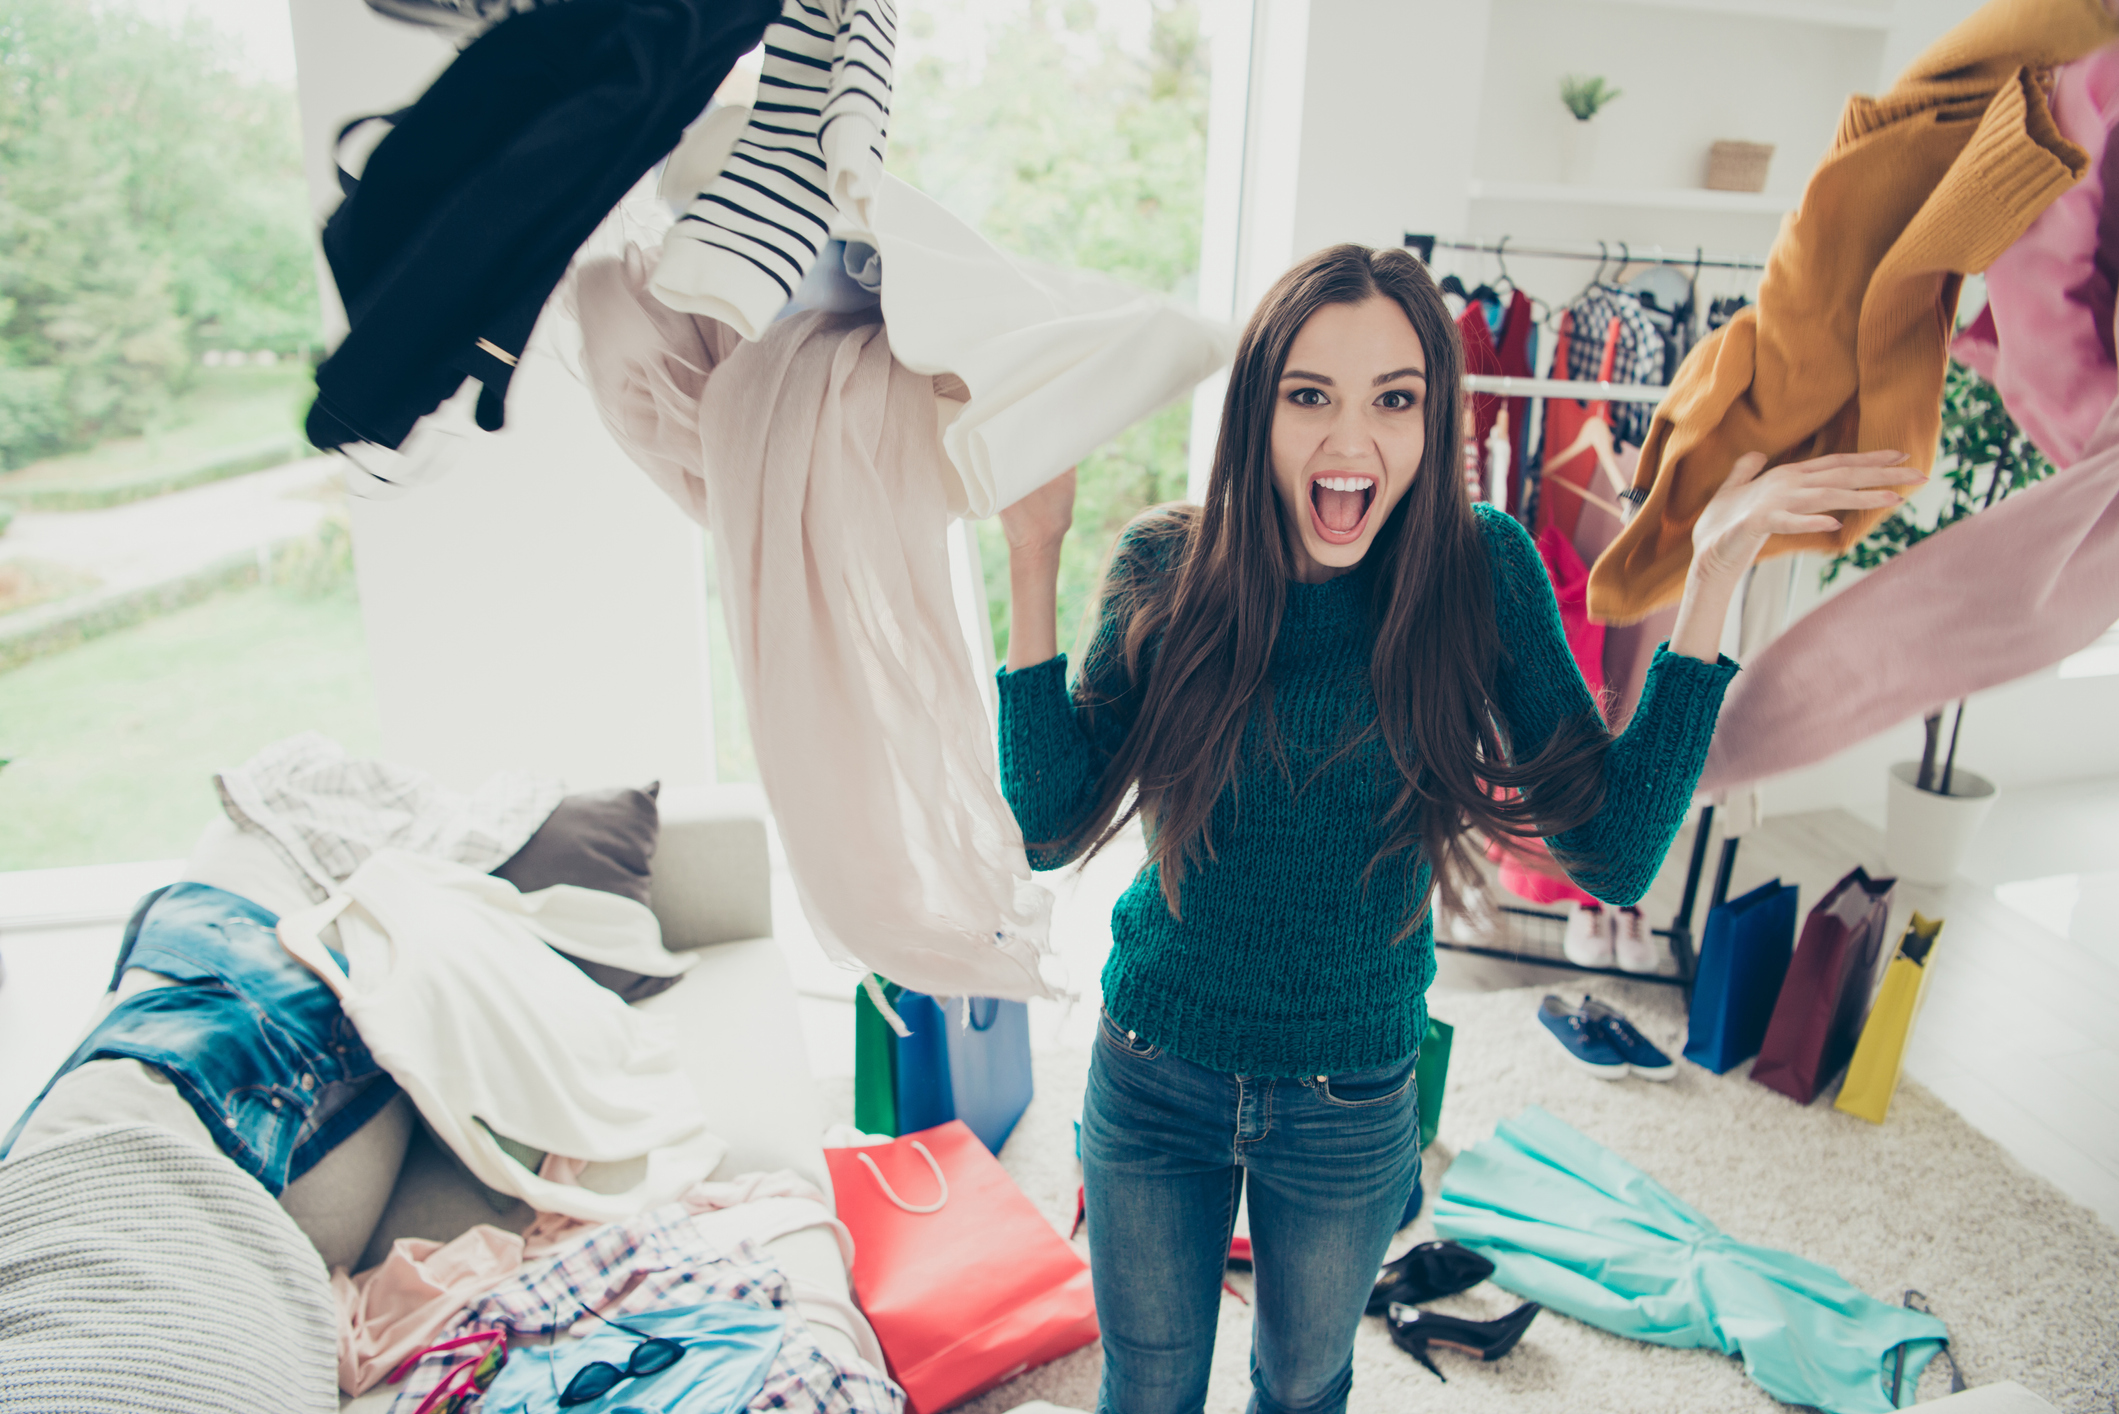 Young woman shrieking as she tosses a bunch of clothes into the air.